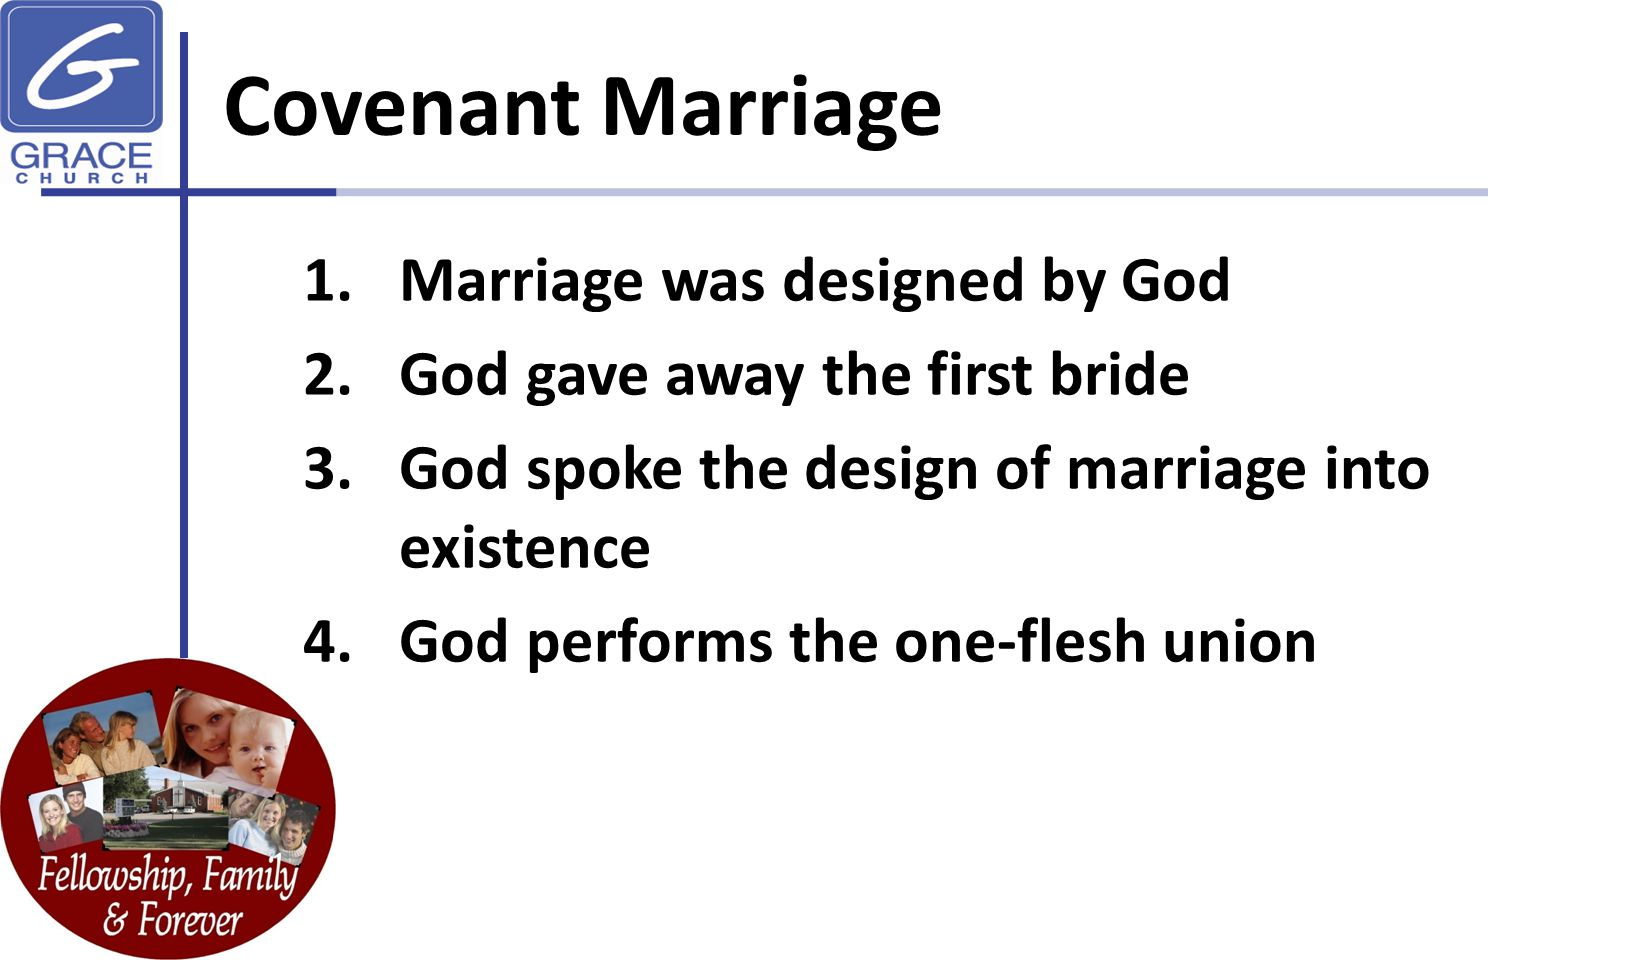 Covenant Marriage 1.Marriage was designed by God 2.God gave away the first bride 3.God spoke the design of marriage into existence 4.God performs the one-flesh union